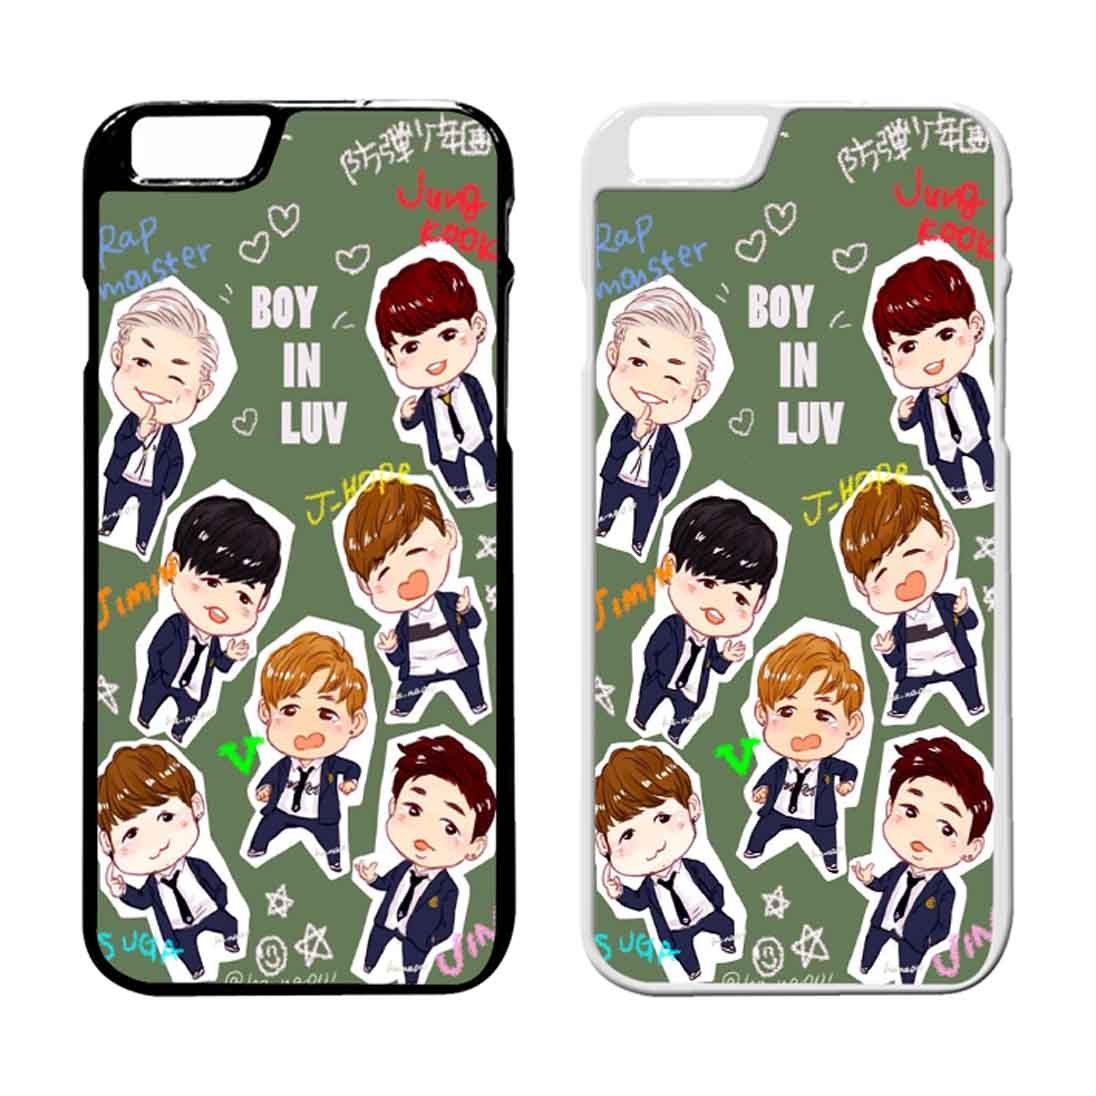 Bts Bangtan Boys Wallpaper 6 Iphone Case Iphone 7 Plus Bts